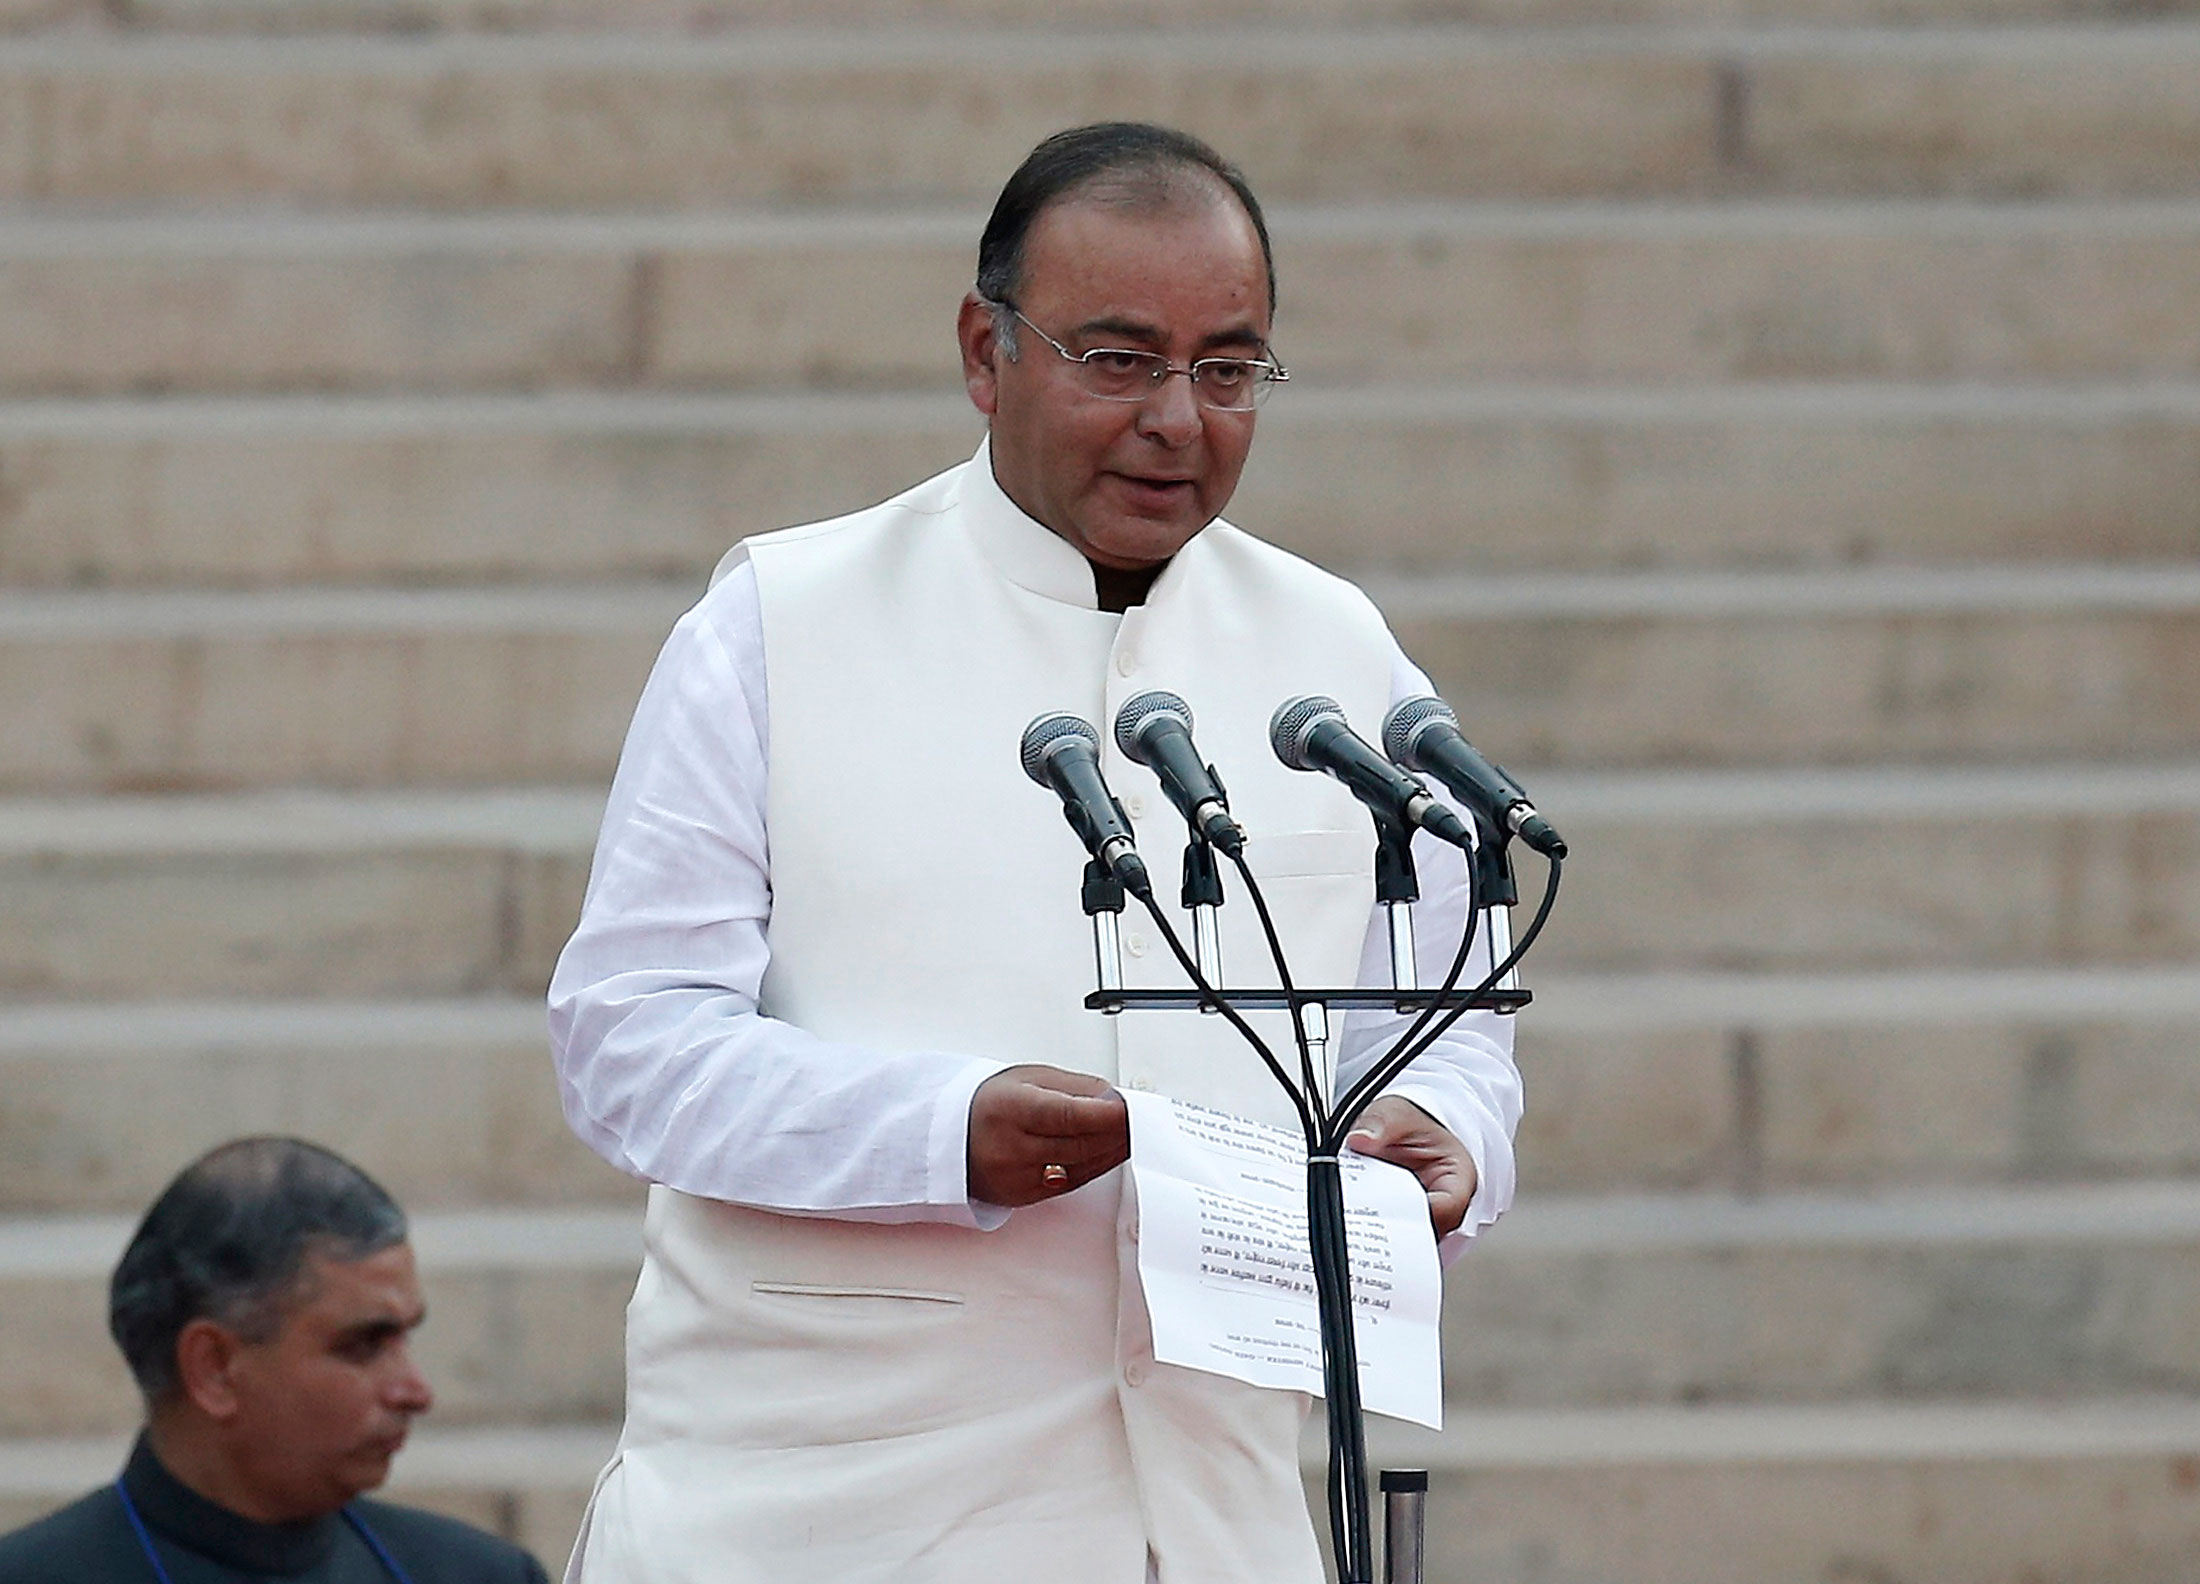 Govt to consider 'next round of action' on subsidies: FM